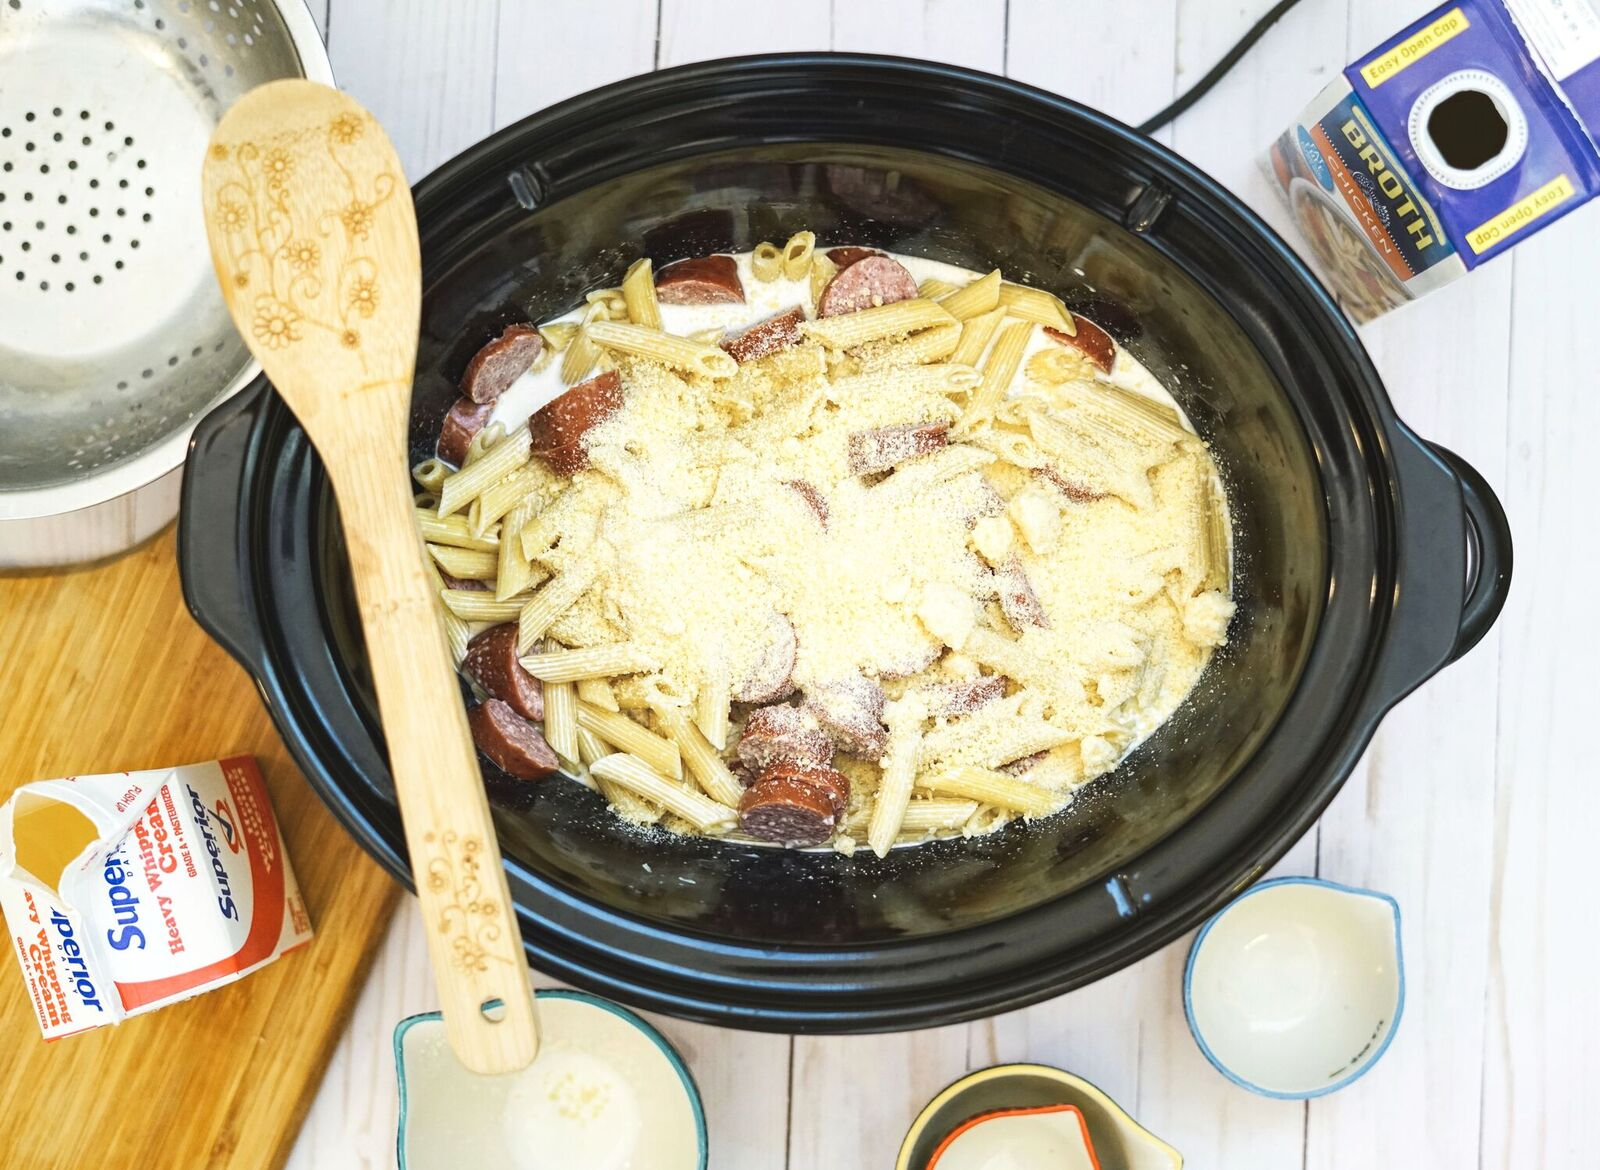 This Creamy Crock Pot Kielbasa Pasta recipe is easy to make, is absolutely delicious and is a perfect meal to serve on a chilly winter night.